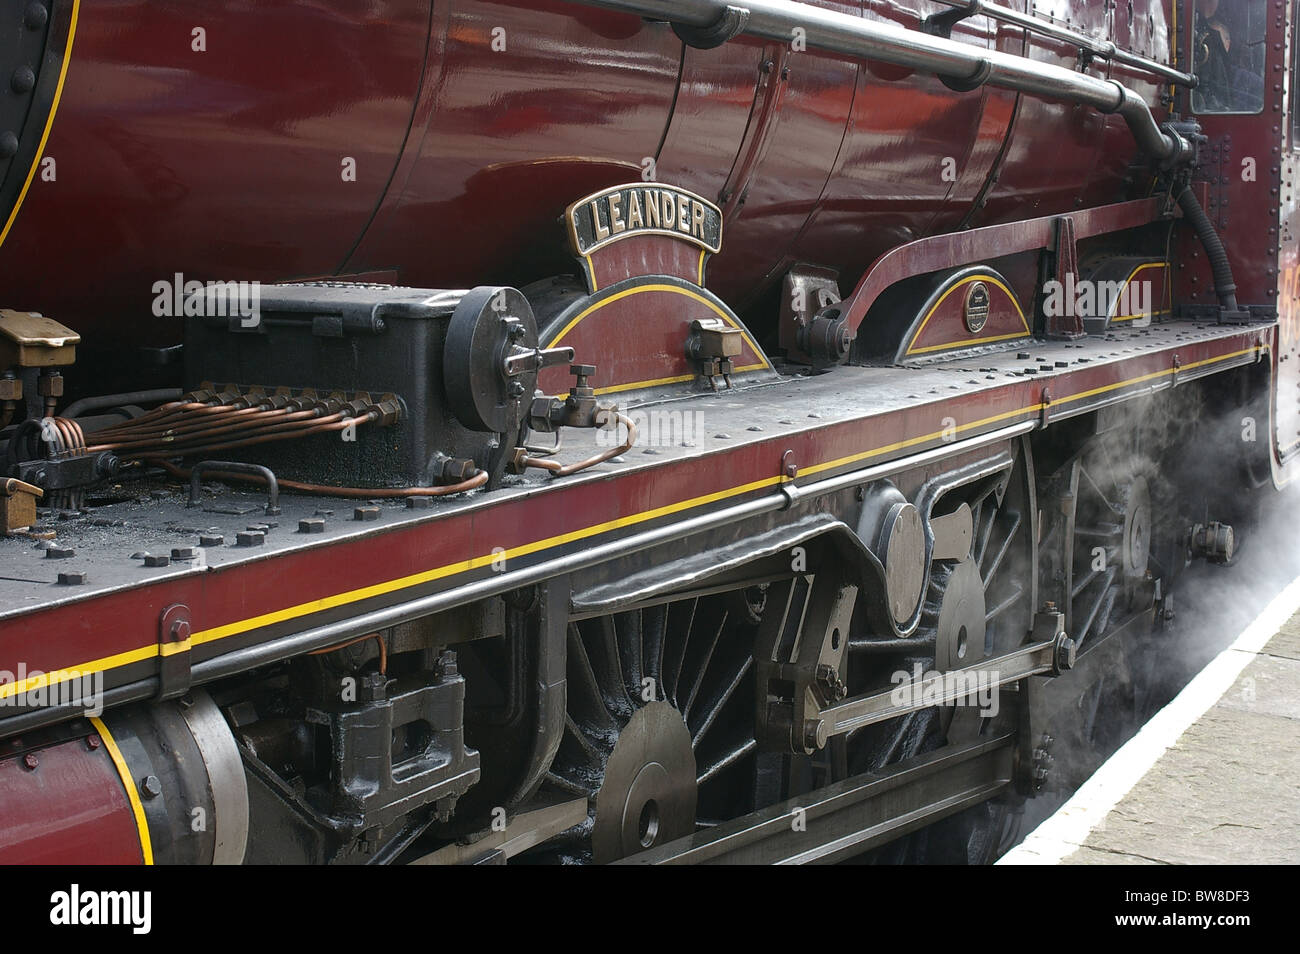 Leander 45690 steam locomotive at Ramsbottom Station, Lancashire - Stock Image